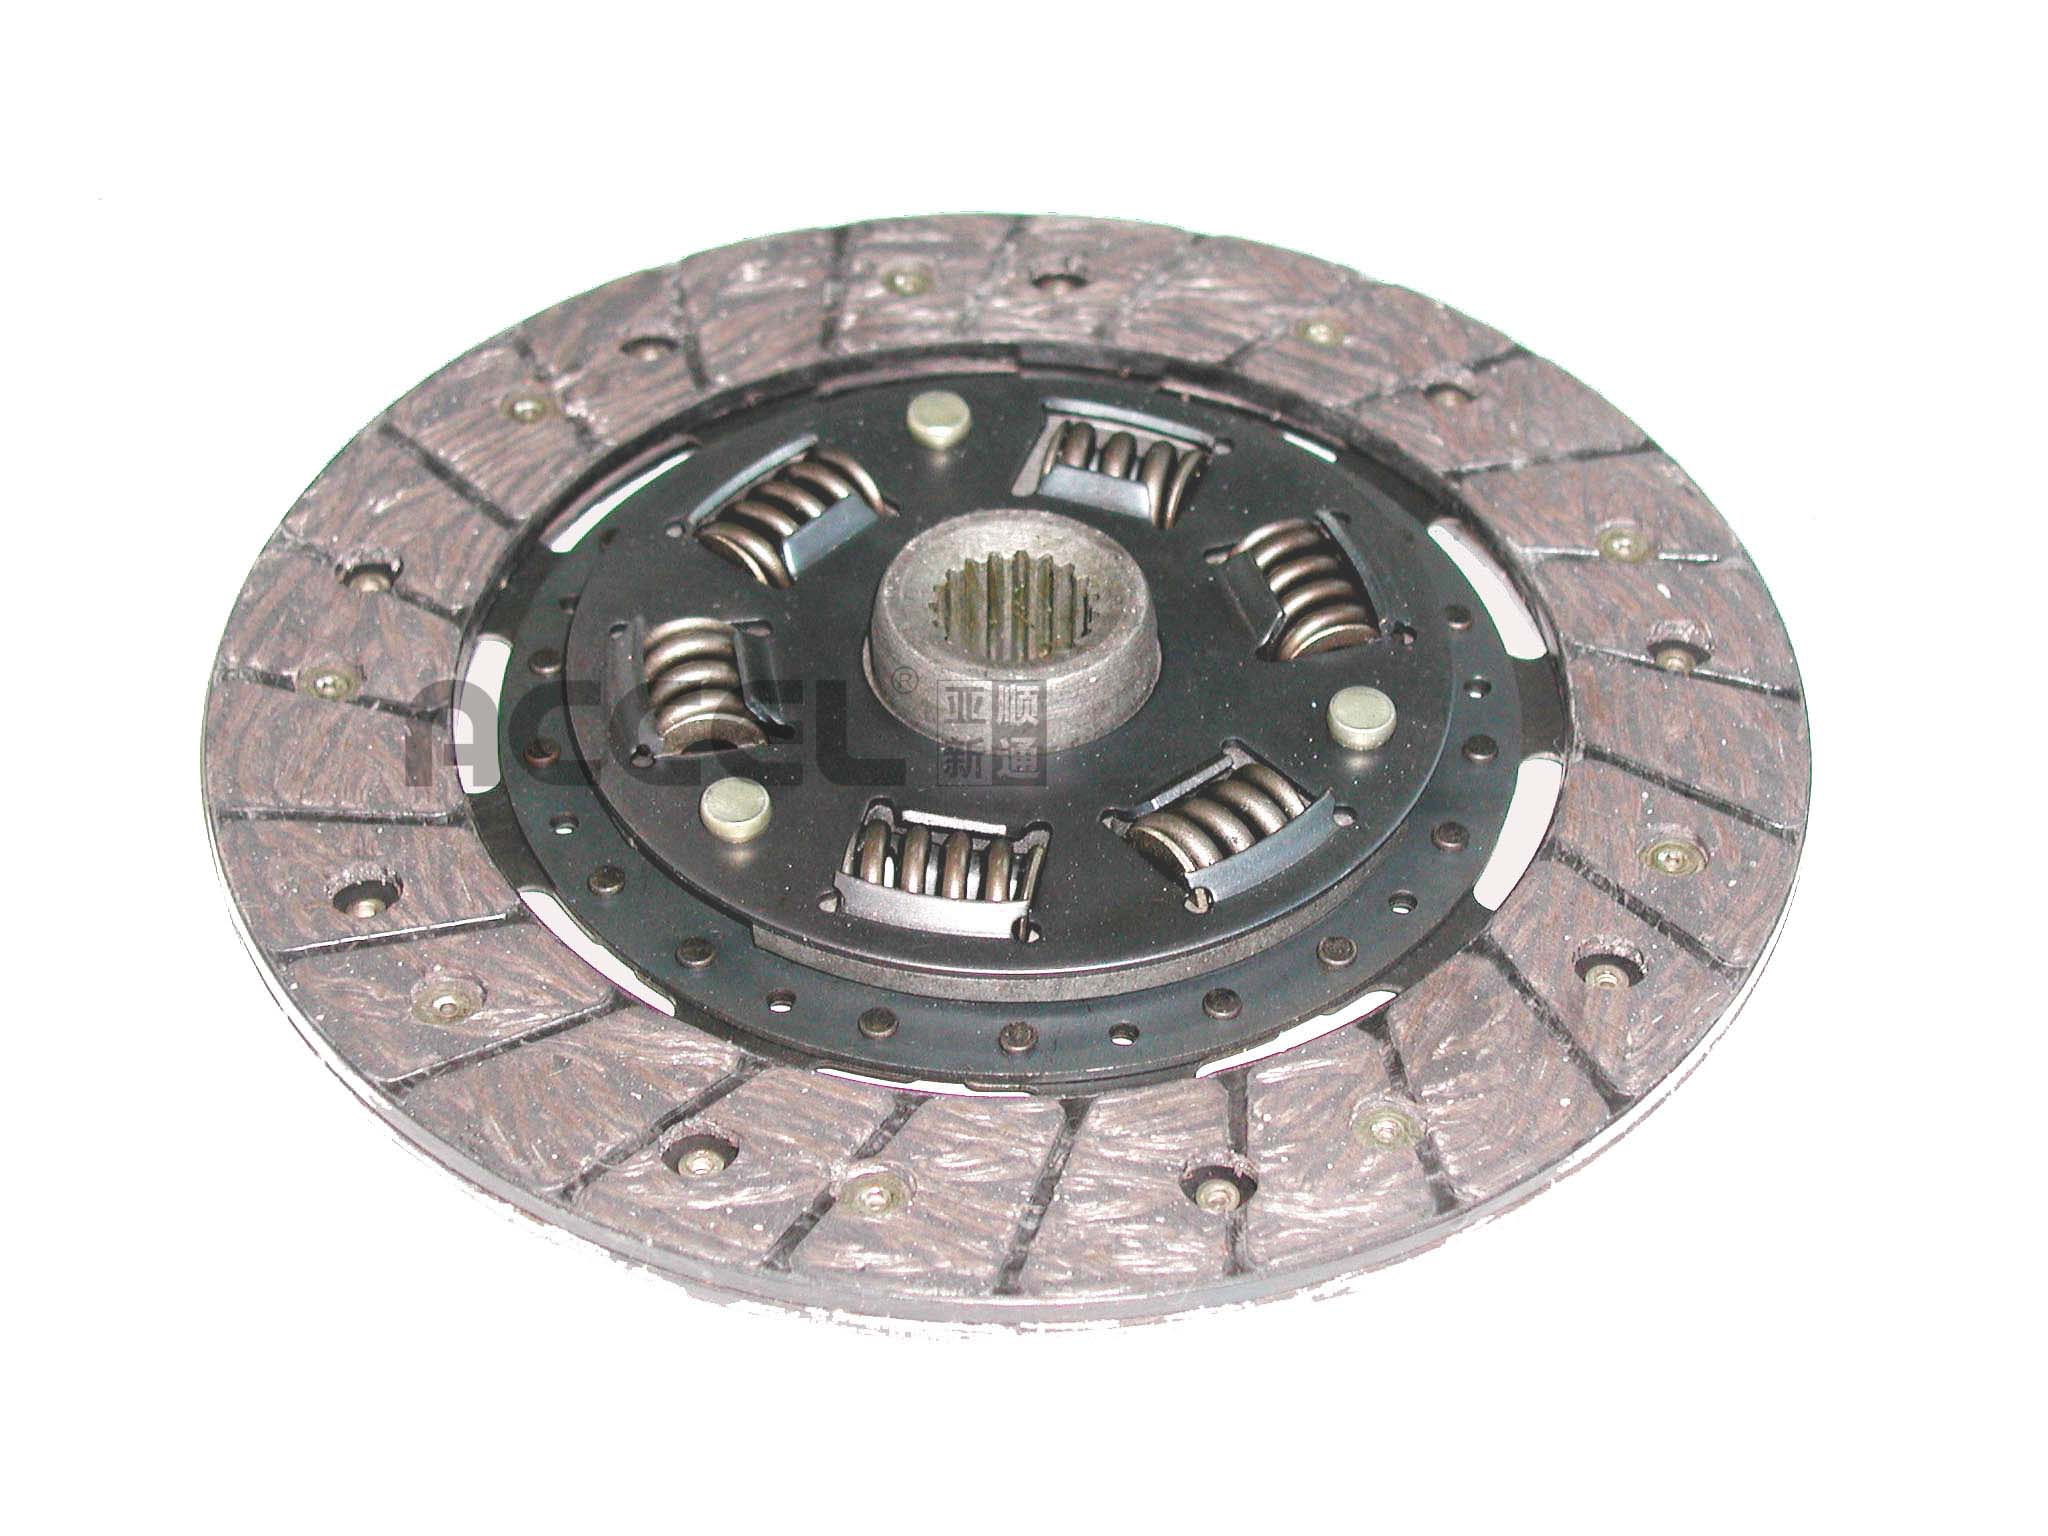 Clutch Disc/OE:22200-PC0-000/190*132*19*20.1/AHC-001/HONDA/CL0117/HCD007